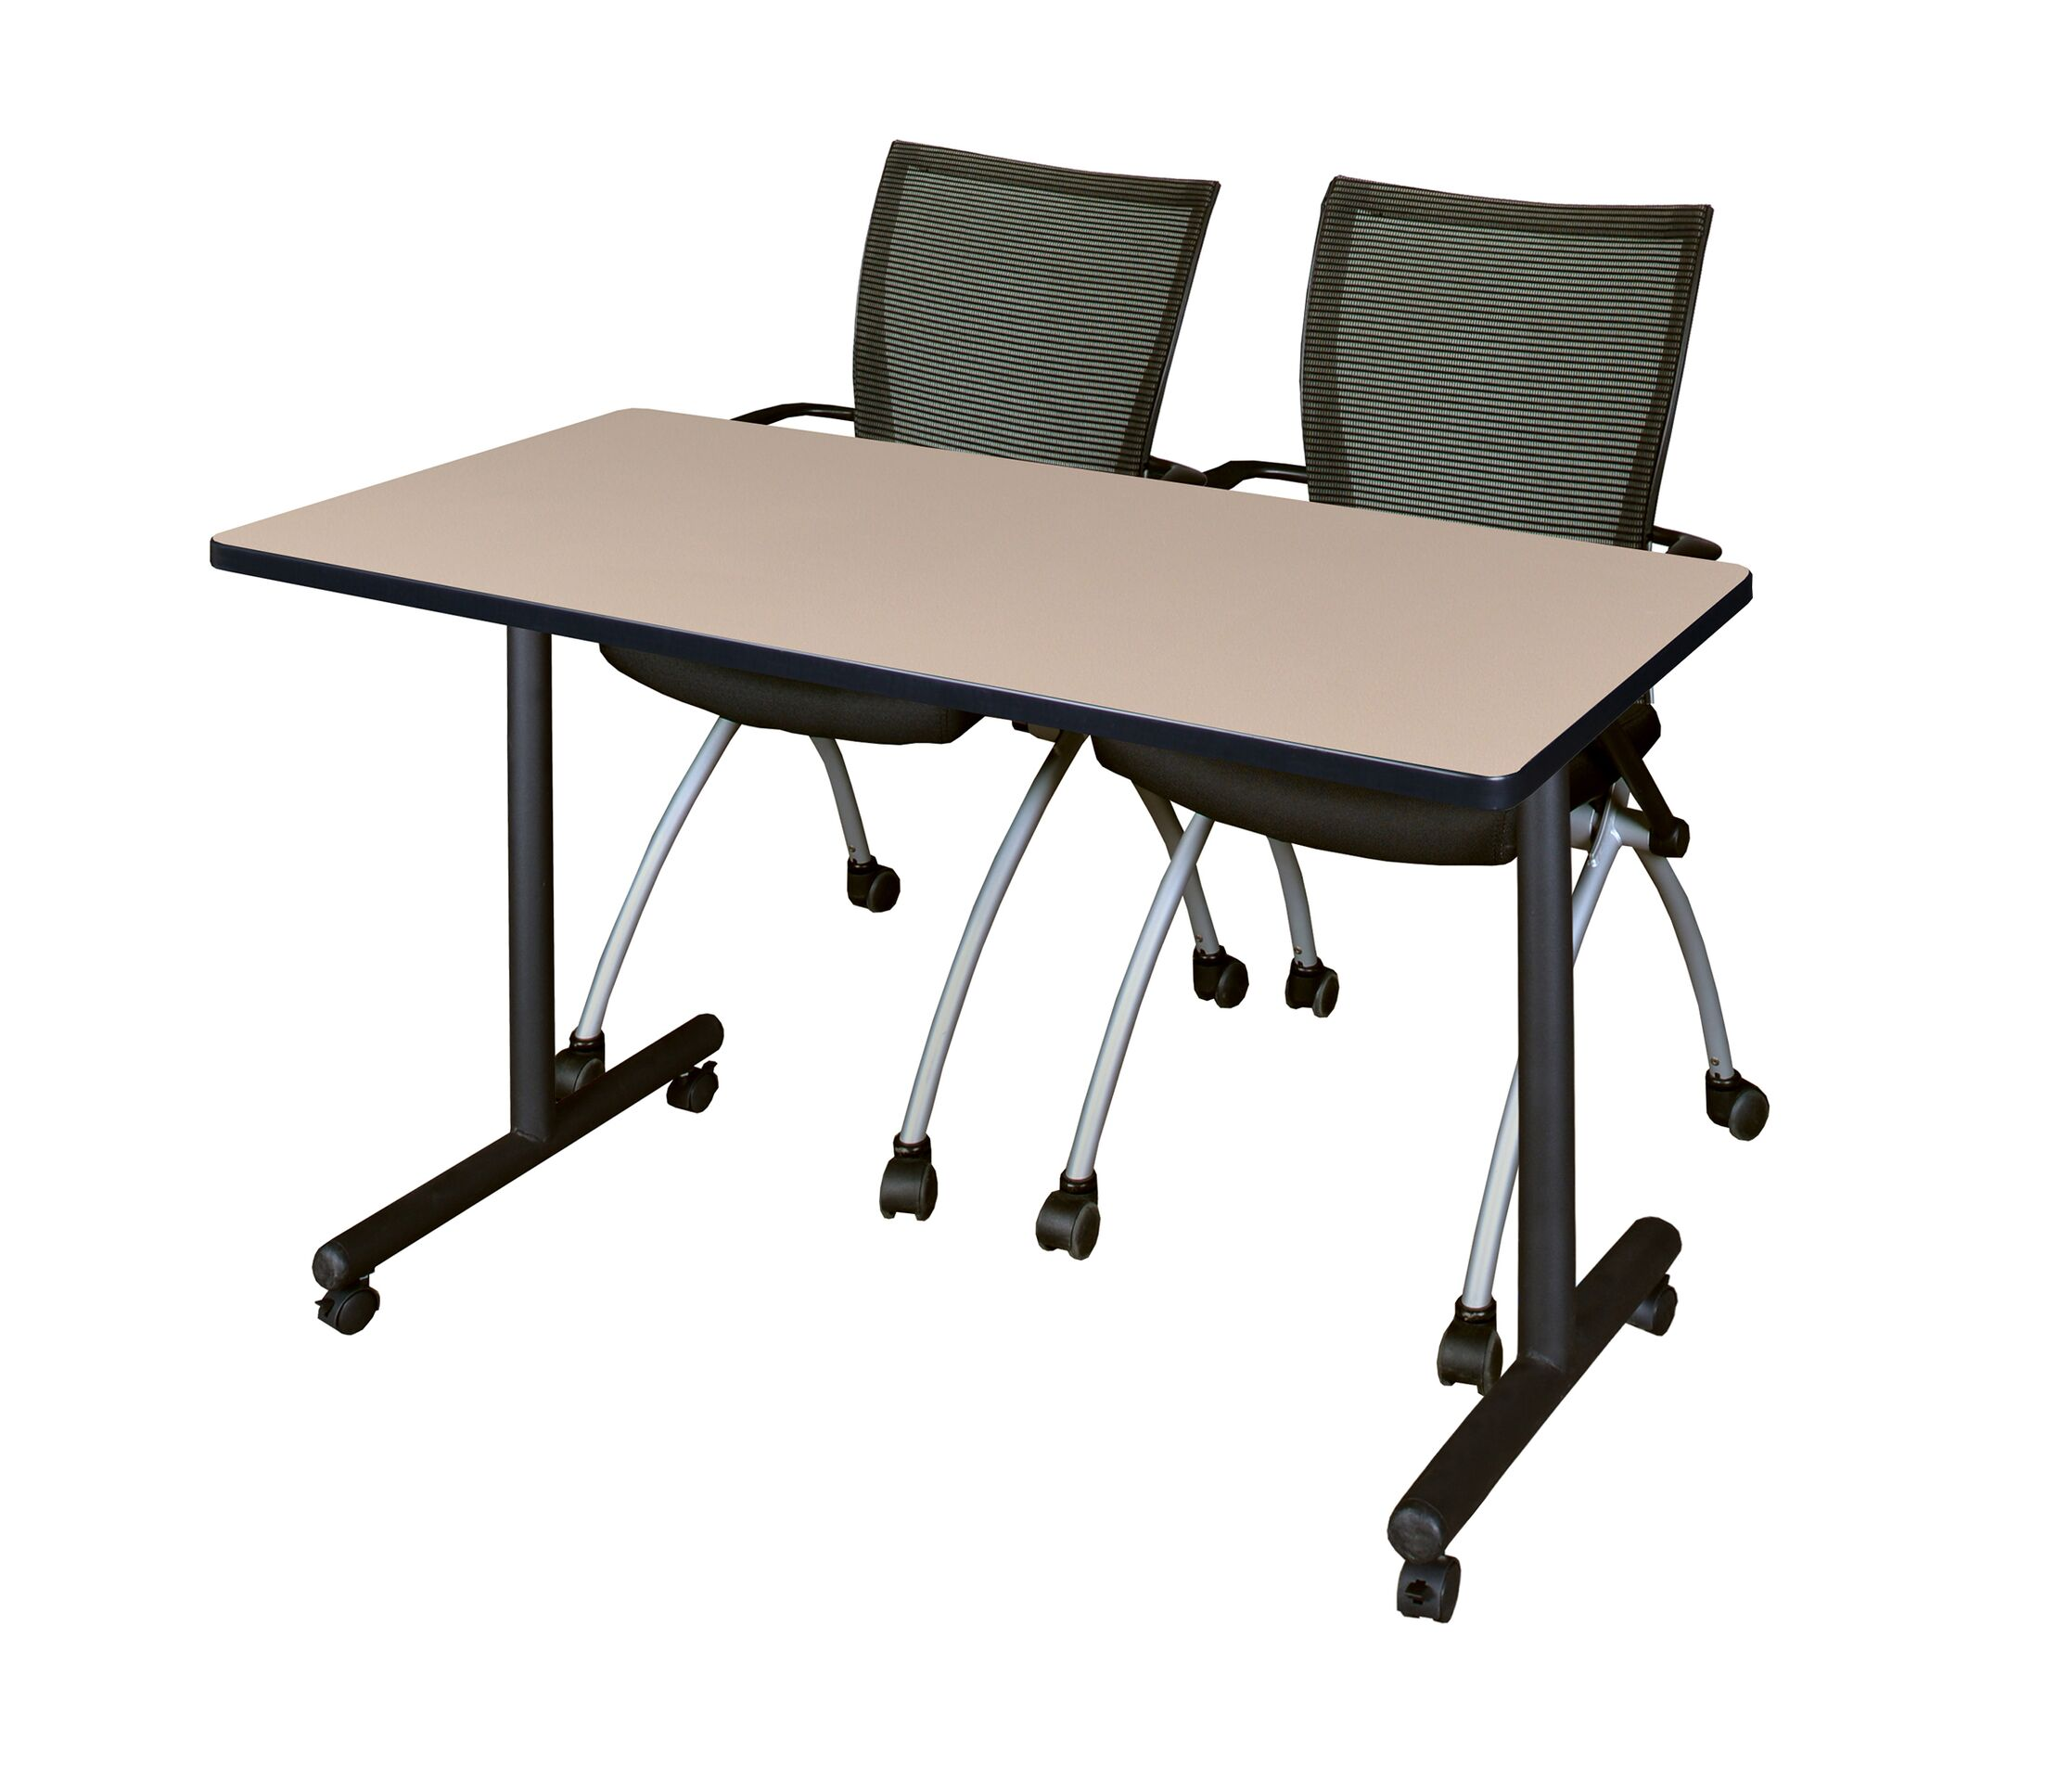 Marin Mobile Training Table Tabletop Finish: Beige, Size: 29